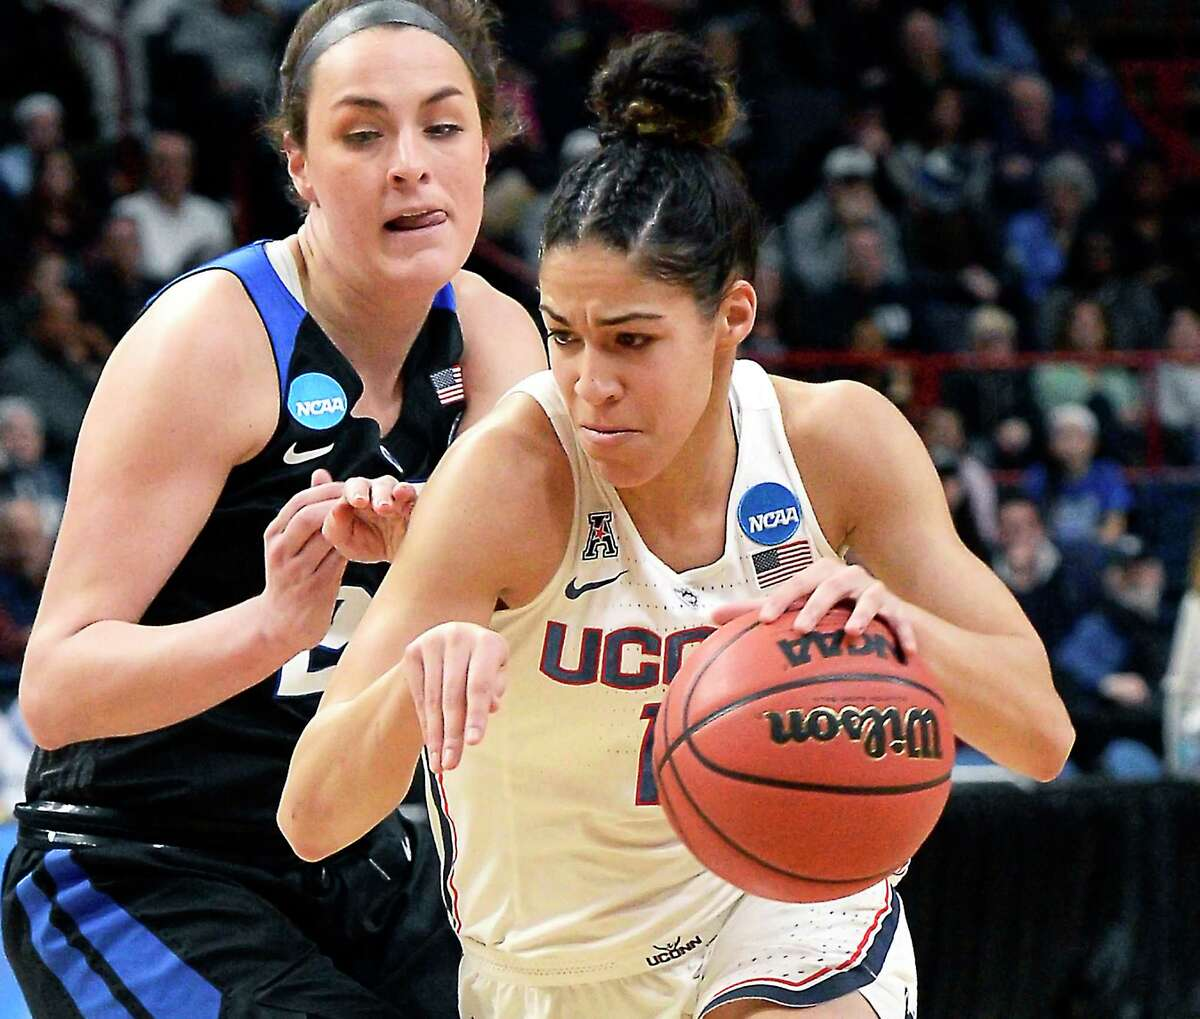 UConn's #11 Kia Nurse drives past Duke's #23 Rebecca Greenwell during their NCAA Women's Basketball Tournament regional semifinal at the Times Union Center Saturday March 24, 2018 in Albany, NY. (John Carl D'Annibale/Times Union)